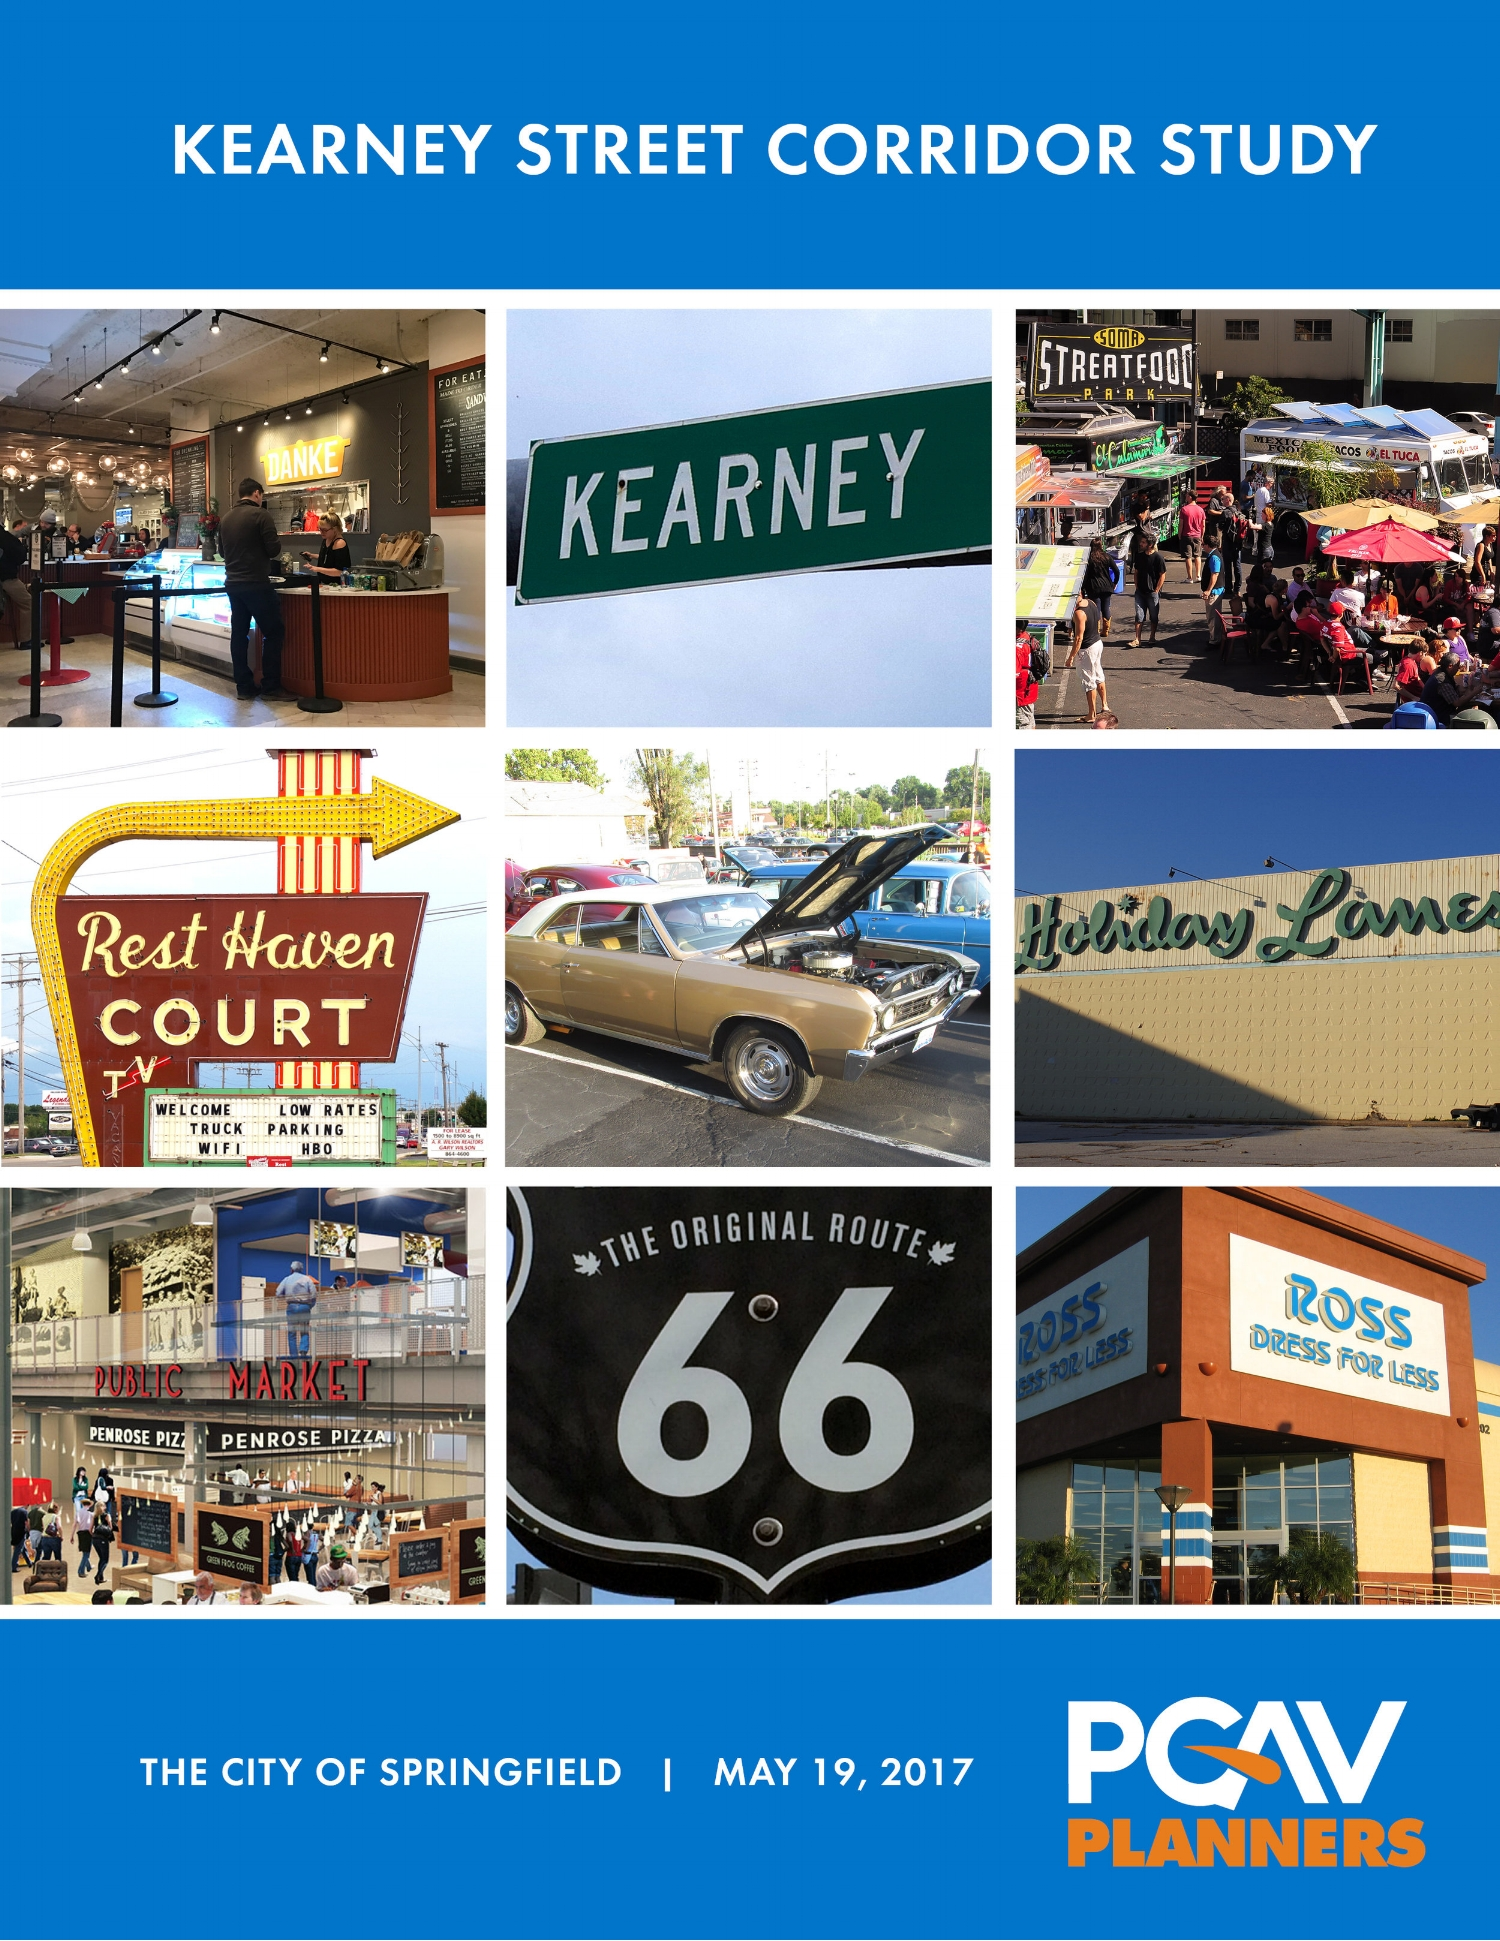 The City is using the Kearney Street Corridor Study from PGAV to create a redevelopment plan for the former Route 66 bypass.